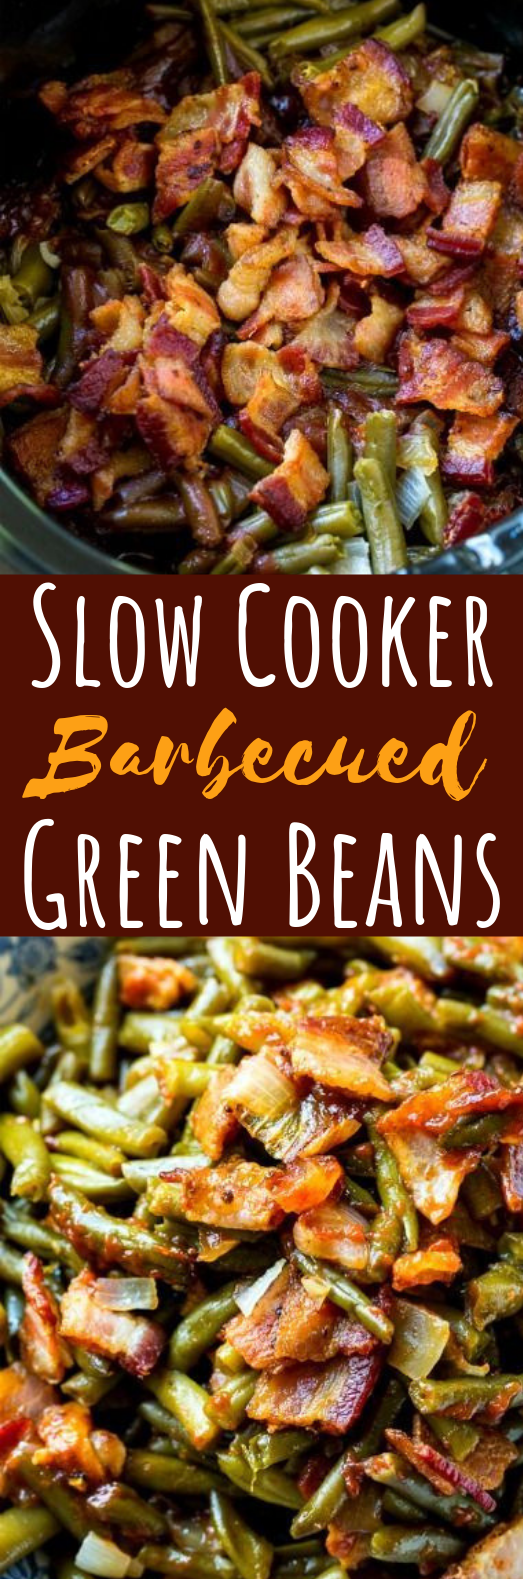 Slow Cooker Barbecued Green Beans #dinner #slowcooker